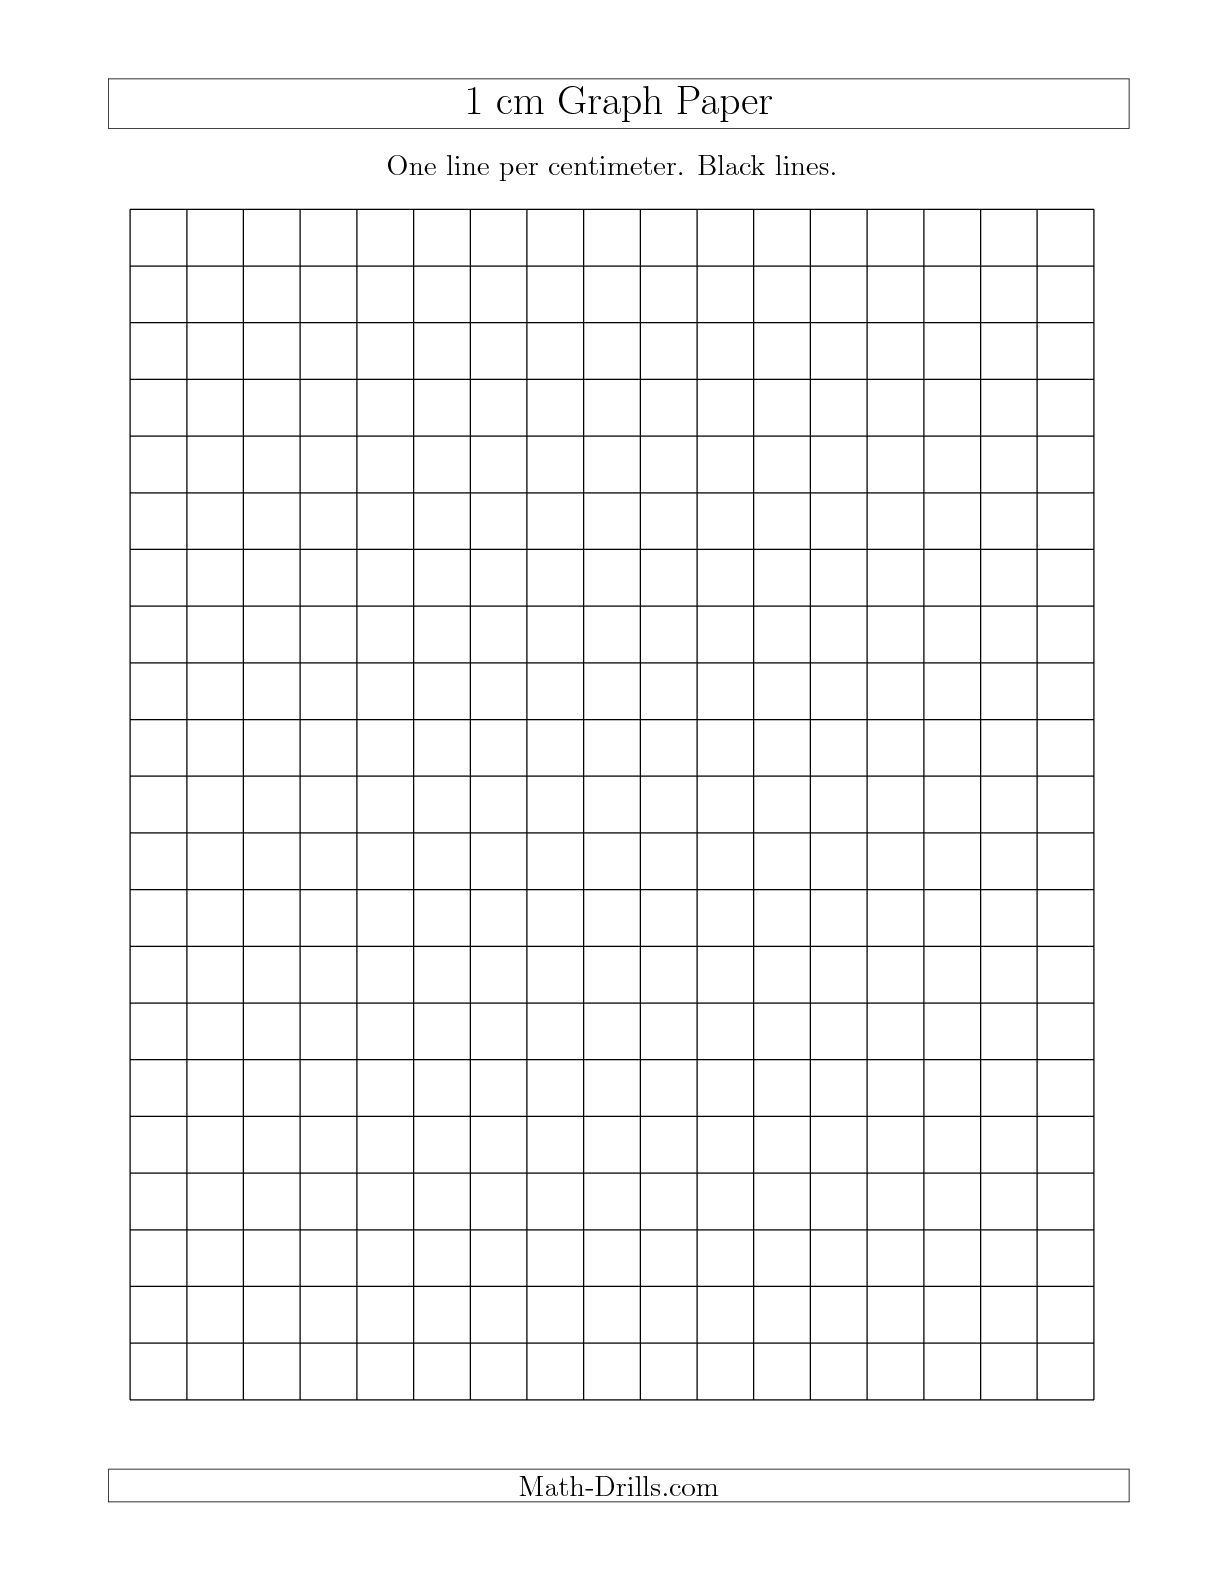 The 1 Cm Graph Paper With Black Lines A Math Worksheet From The Graph Paper Page At Math